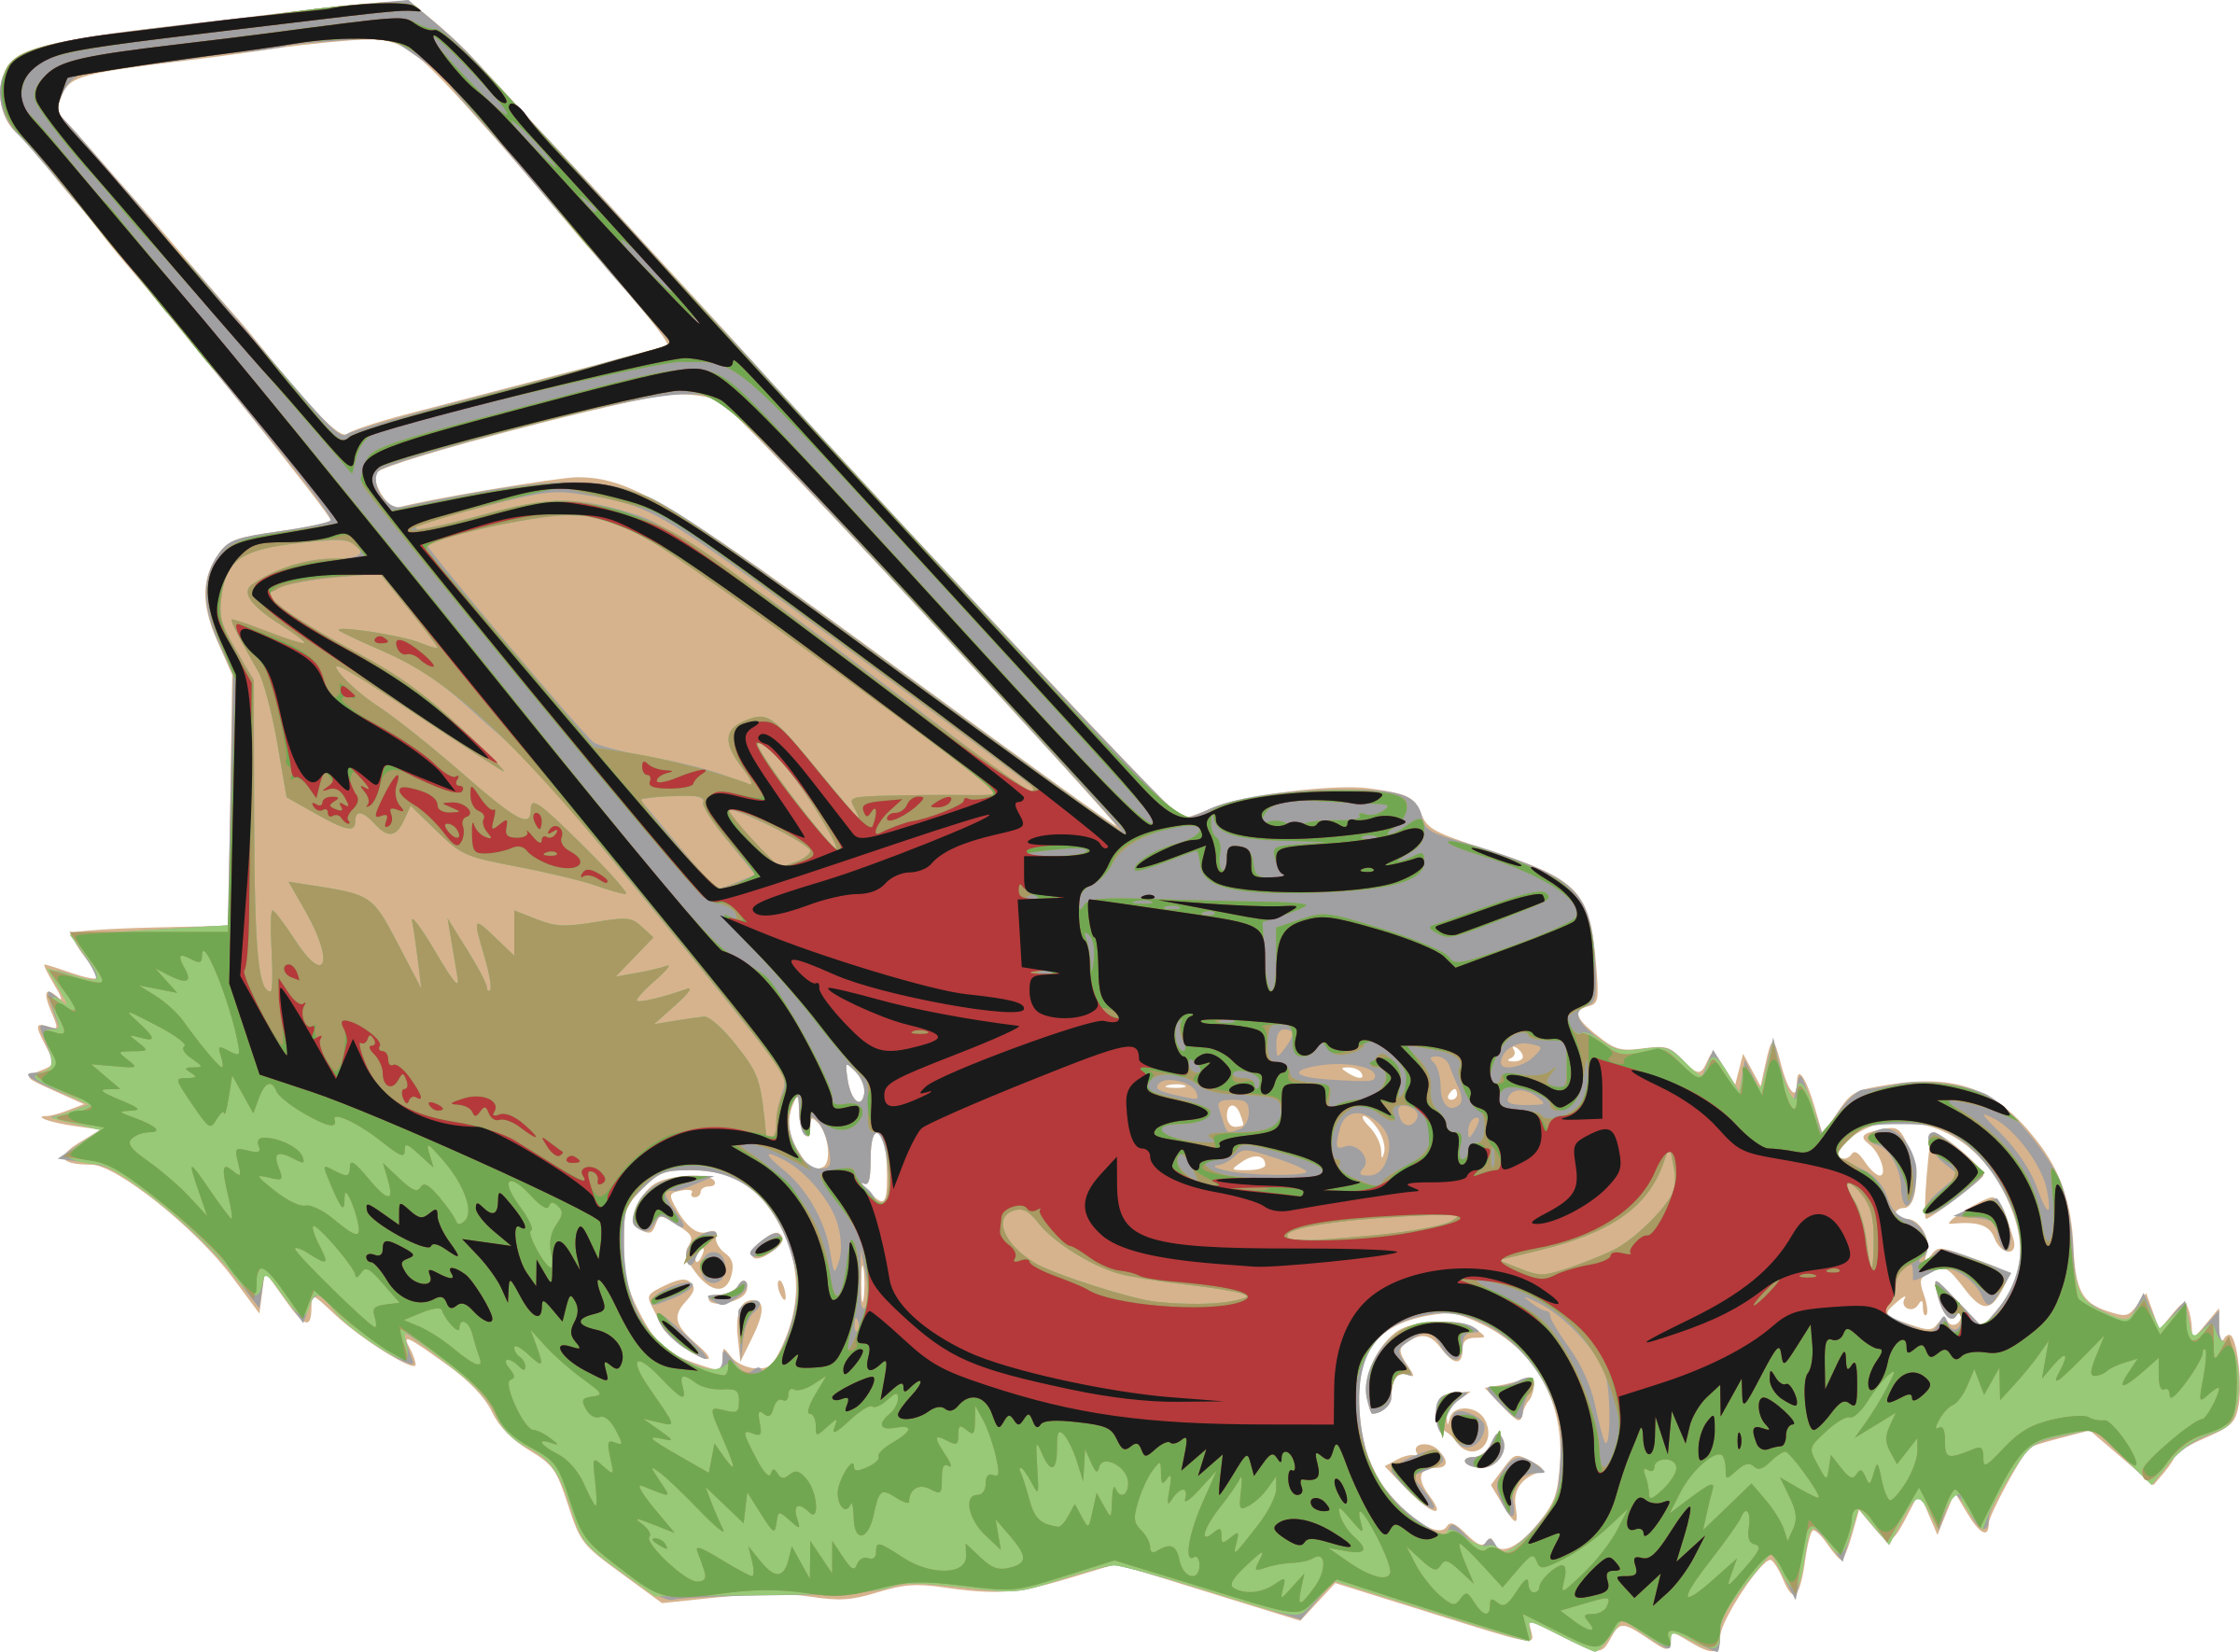 clip art library download Landscaping clipart grass cutting. Png mowing transparent images.